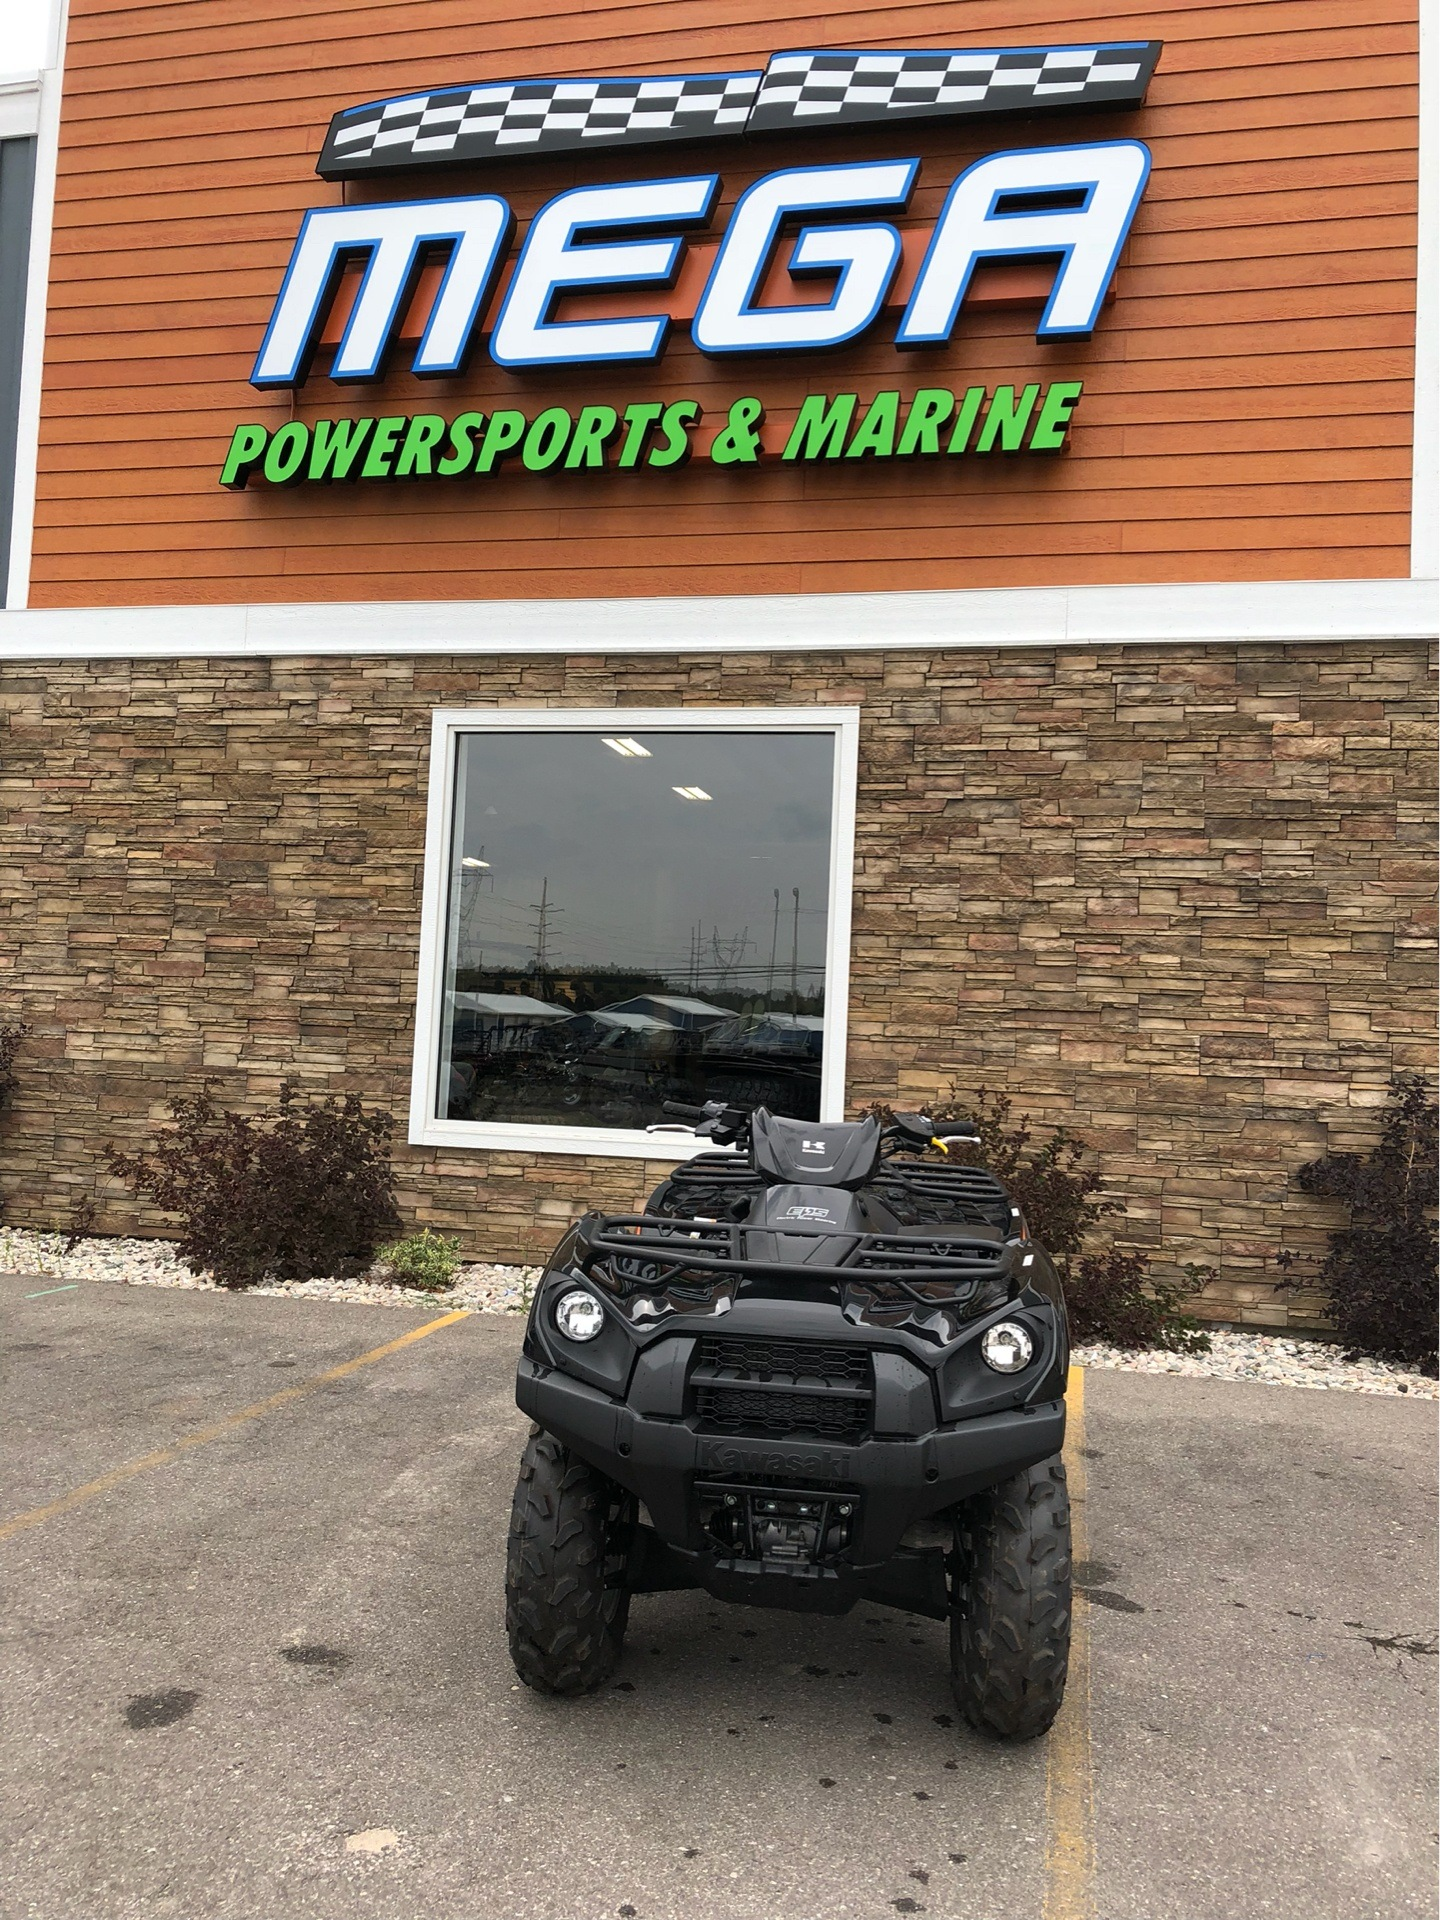 2018 Kawasaki Brute Force 750 4x4i EPS for sale 2199